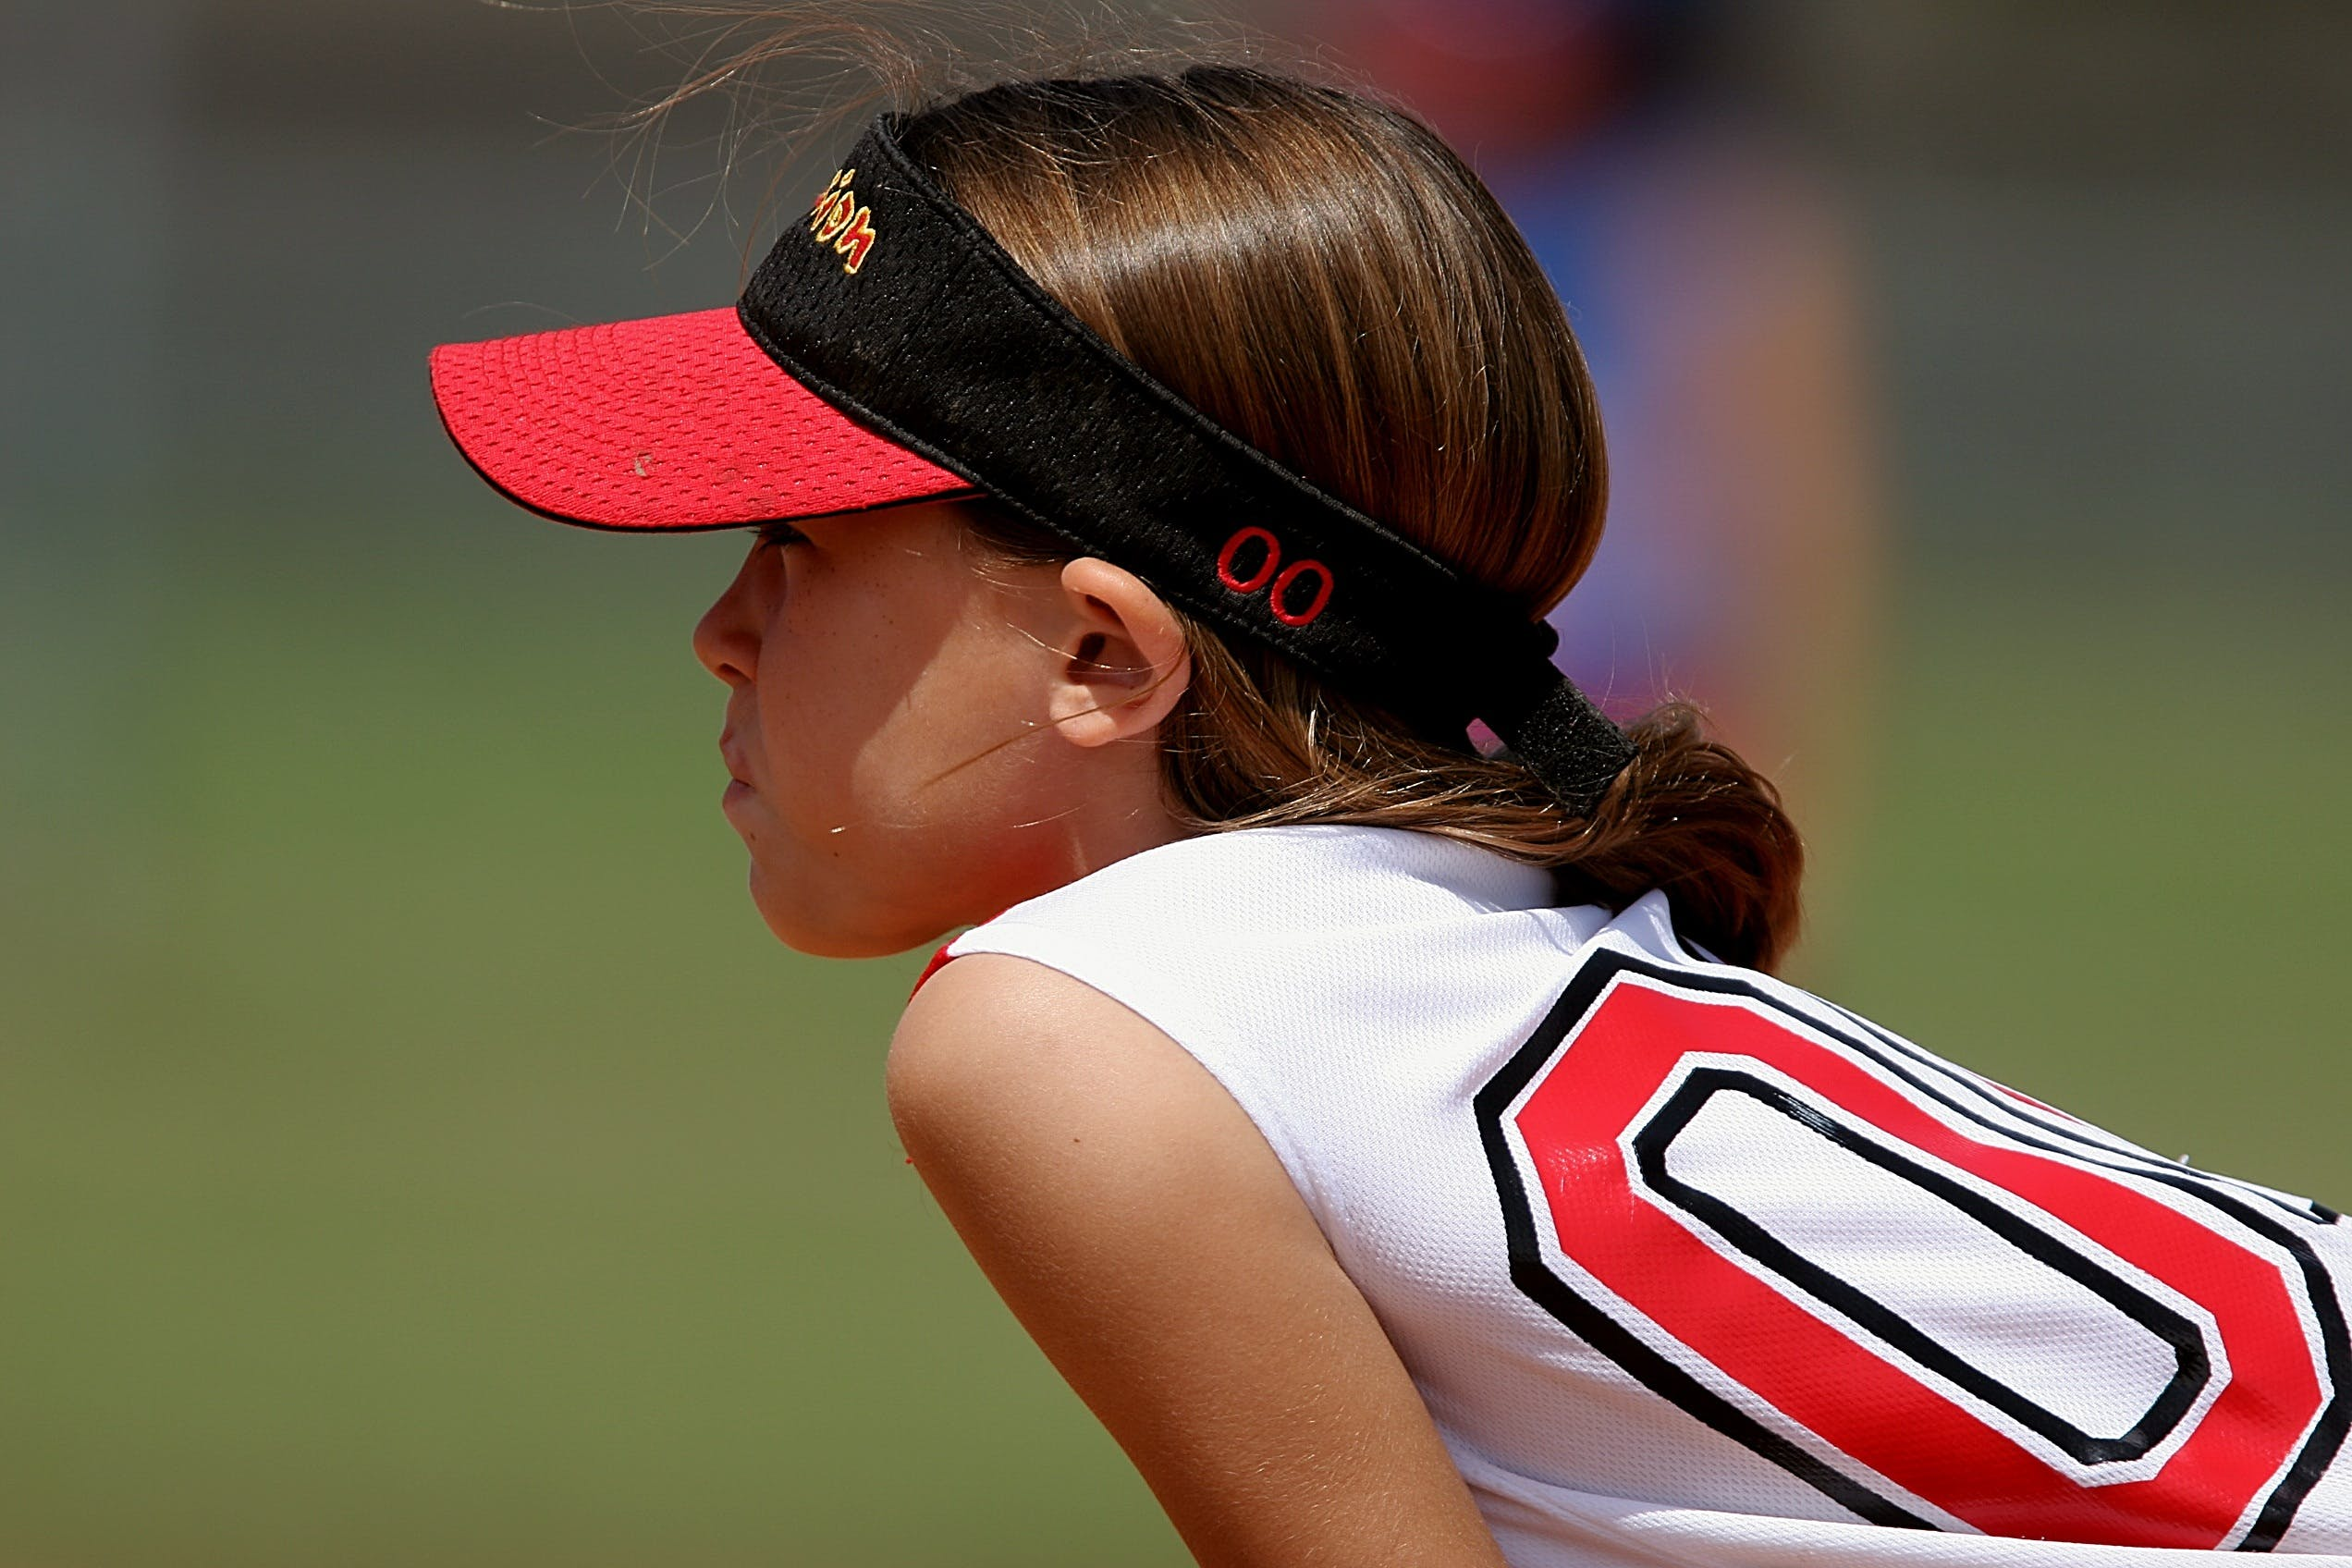 Girl Wearing Red and Black Sun Visor and White and Red Jersey Top